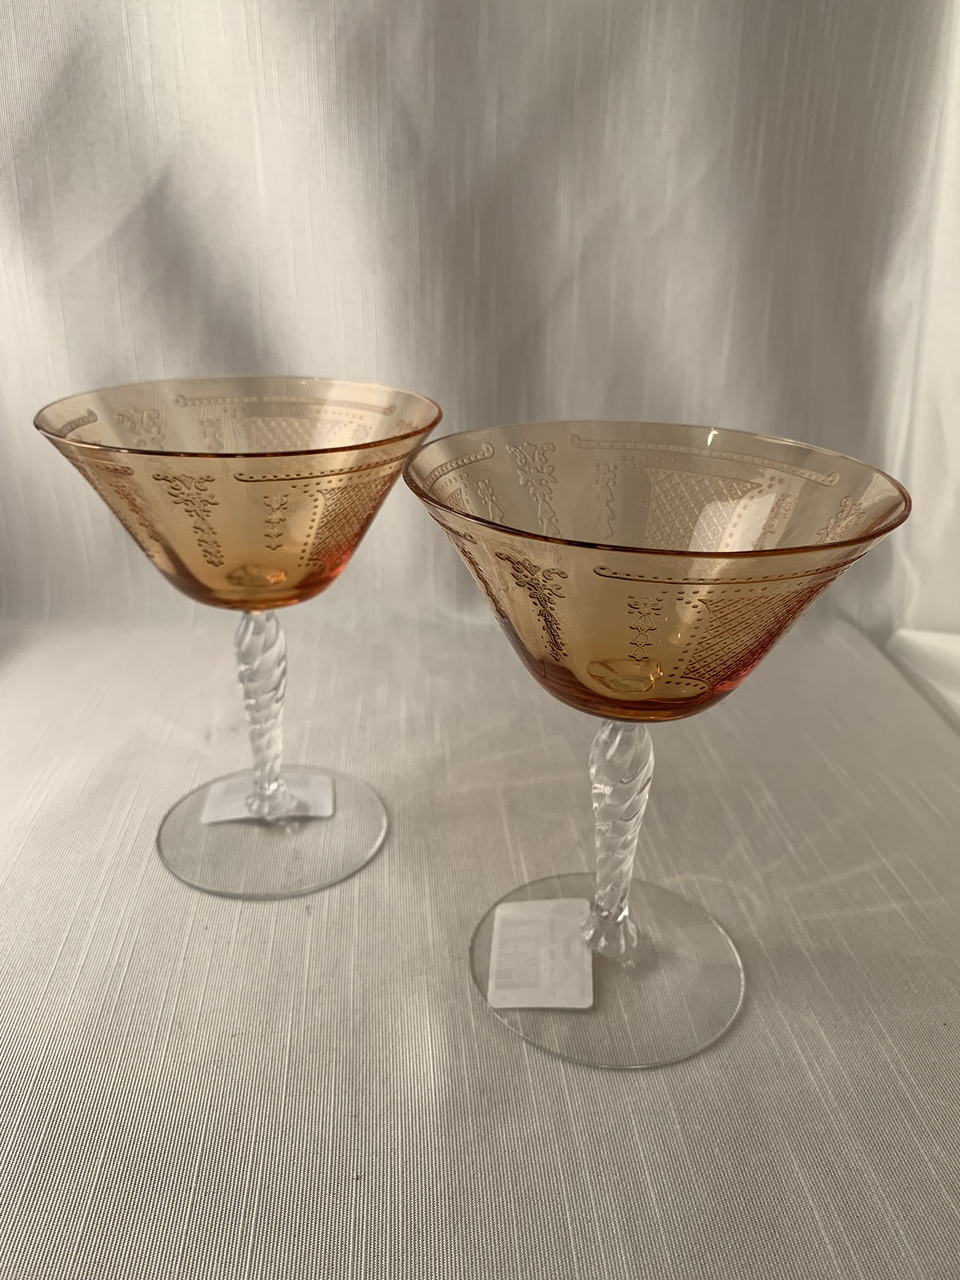 Set of 2 Amber Depression Era Flash Stemware Eloquent Dinner Party Gift Boho